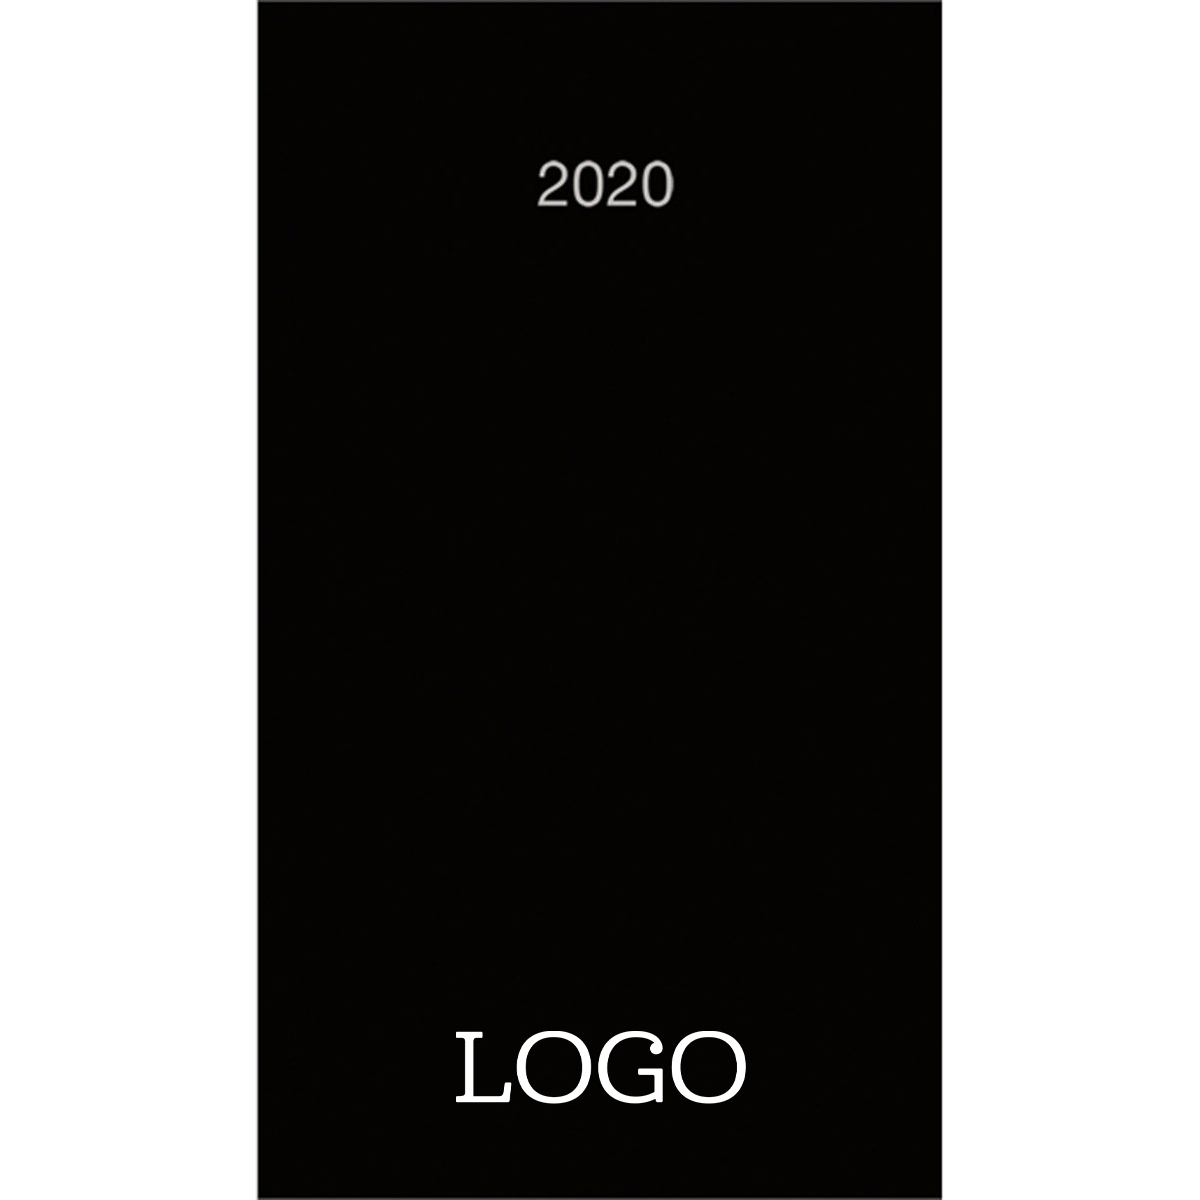 250746 pocket 2020 planner one color one location imprint